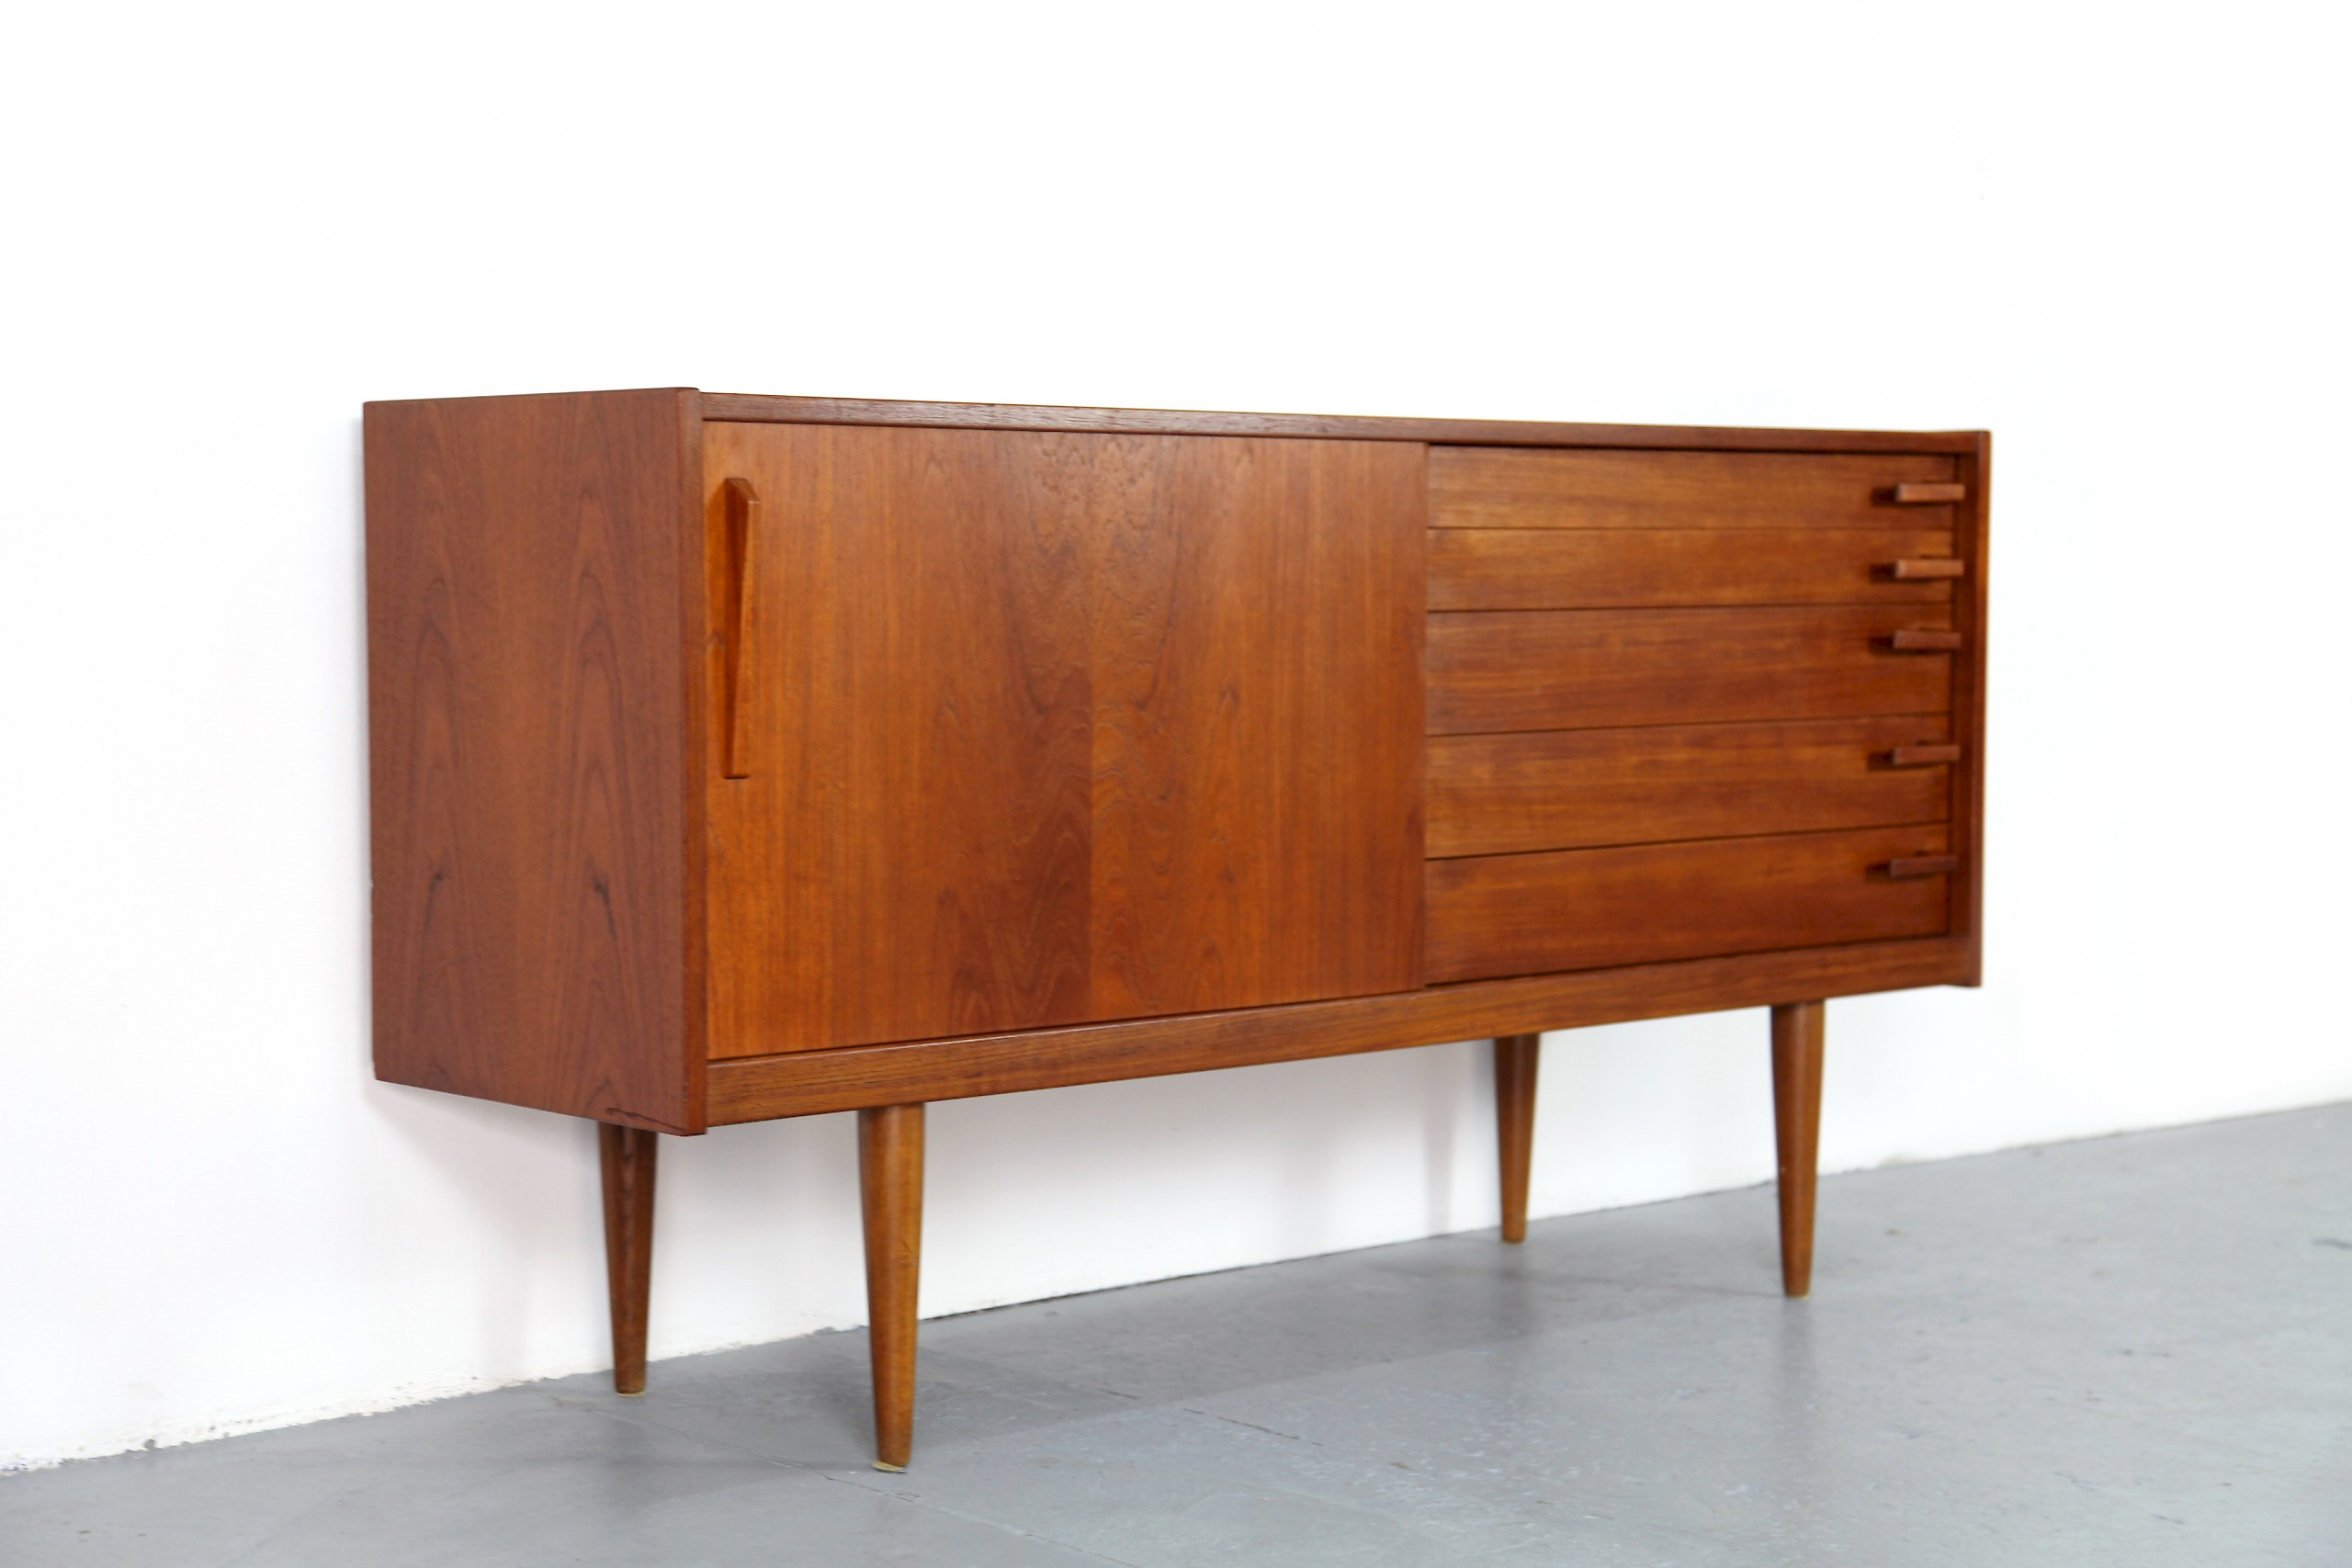 skandinavisches teakholz sideboard von yngve ekstr m 1956. Black Bedroom Furniture Sets. Home Design Ideas